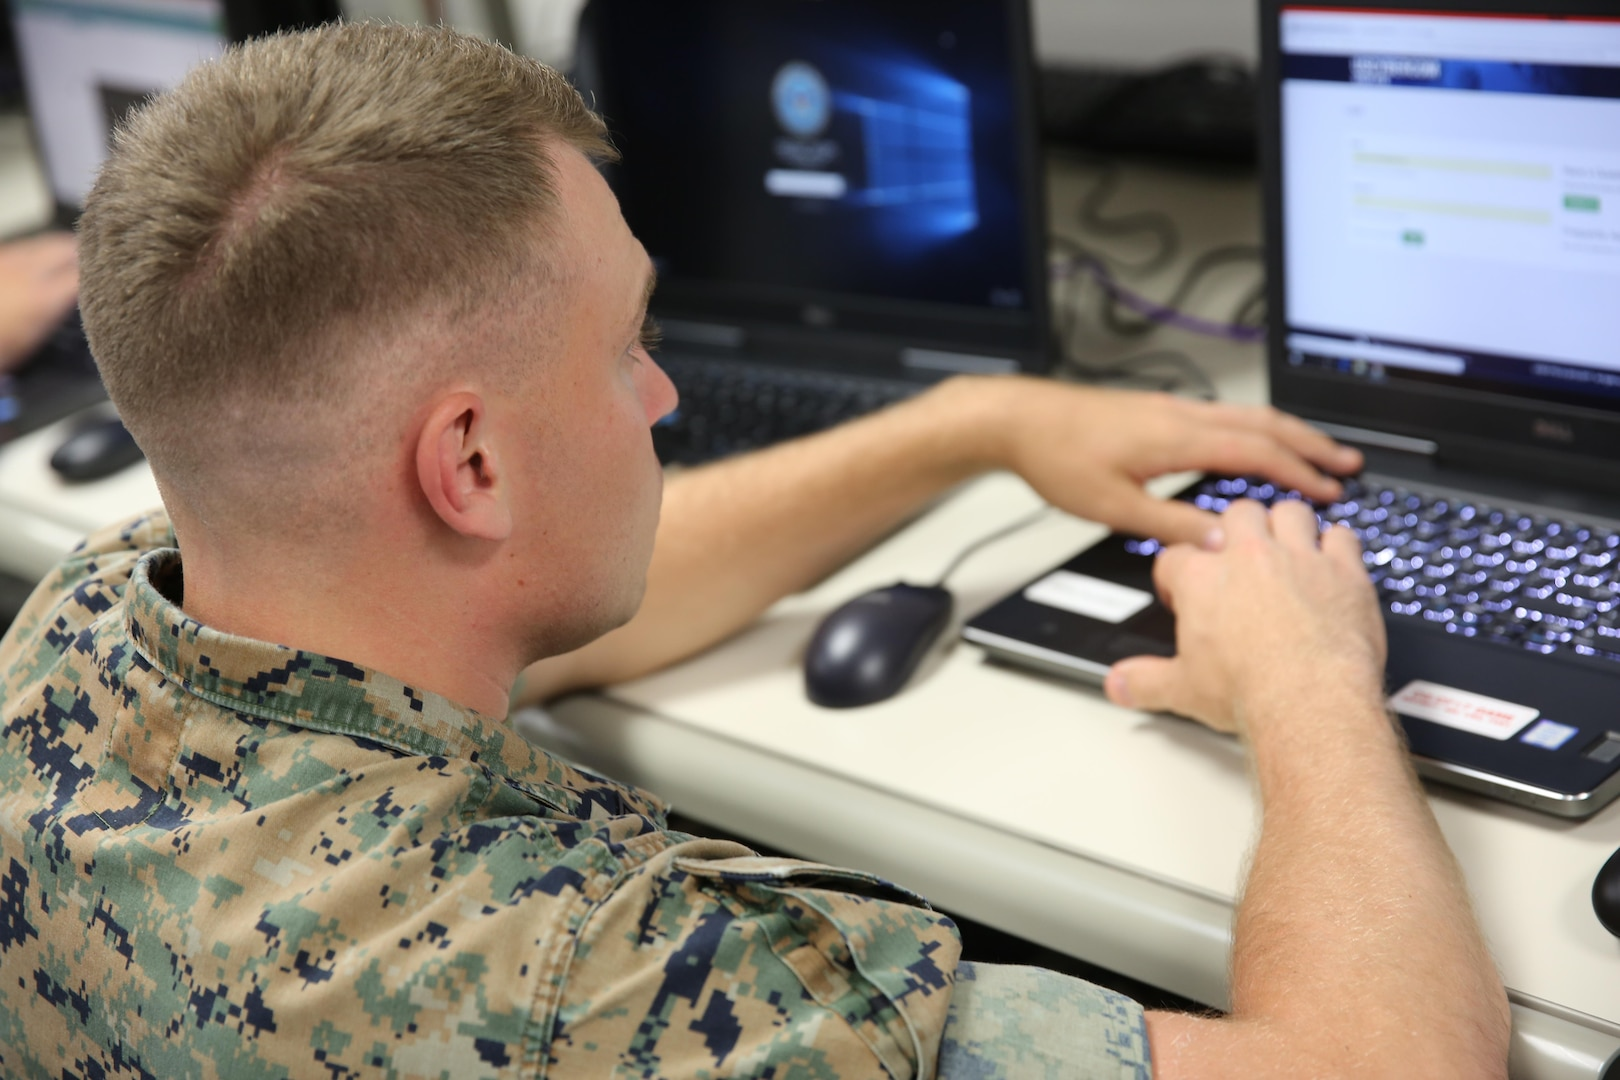 A Soldier works on his laptop during the Cyber Guard 2017 exercise June 13, 2017. Cyber Guard is a weeklong exercise that tests and exercises the men and women of U.S. Cyber Command's Cyber Mission Force and interagency partner teams from across federal and state organizations tasked with defending critical infrastructure.